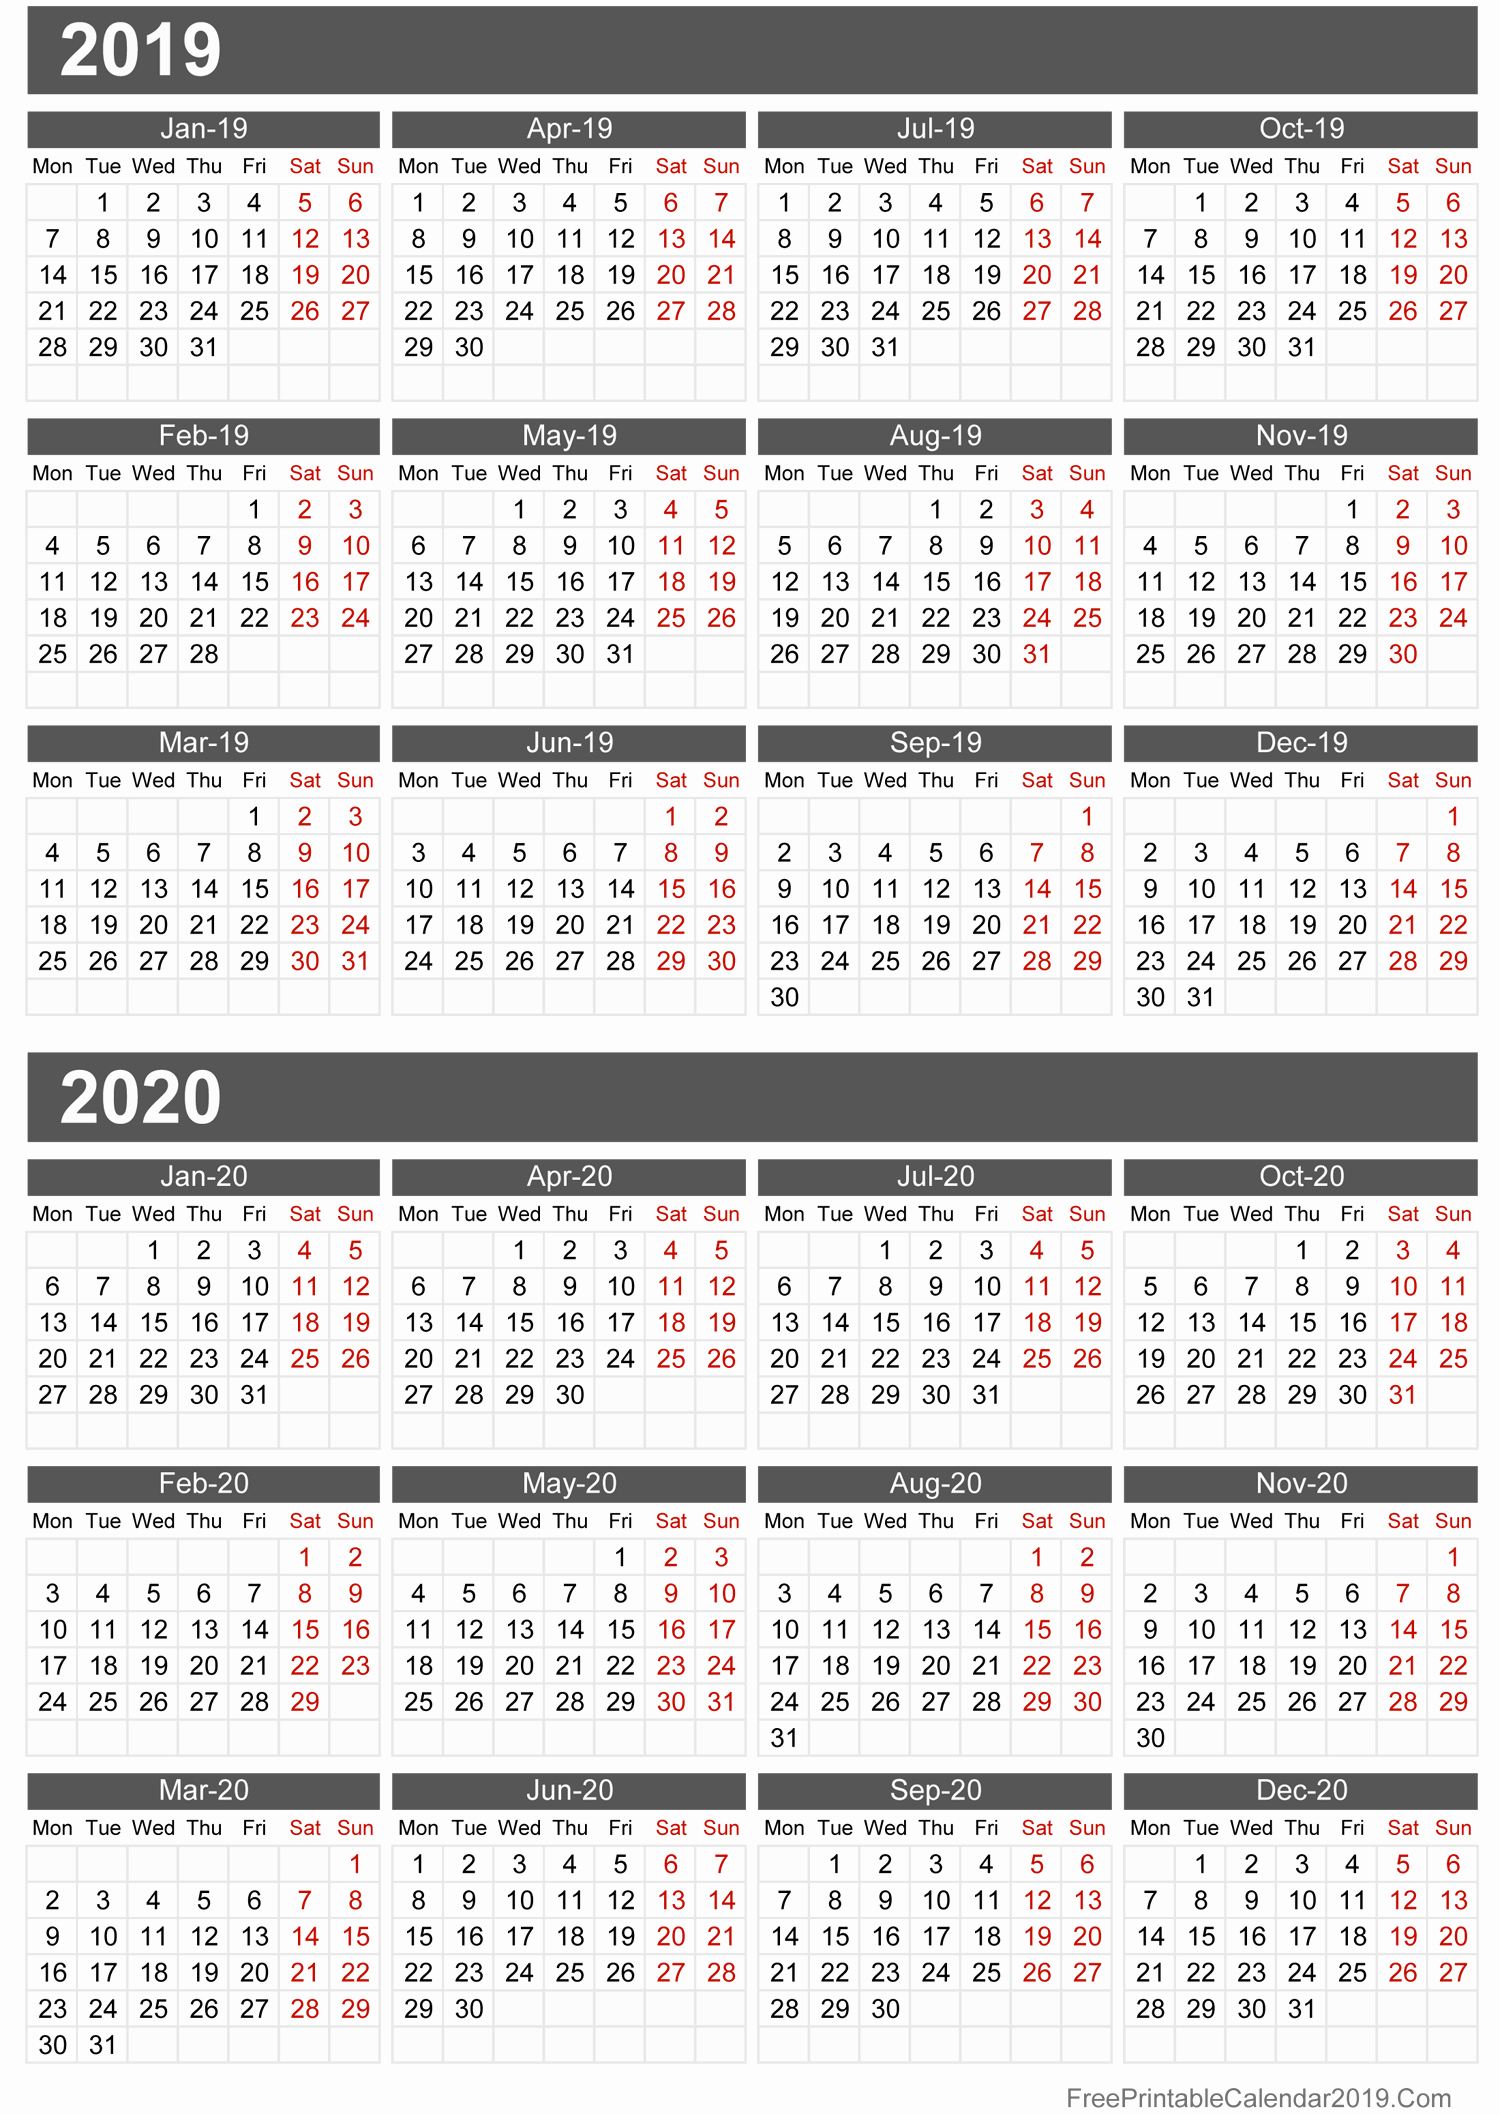 2019 and 2020 Calendar Printable Lovely Free Printable Calendar 2019 with Holidays In Word Excel Pdf